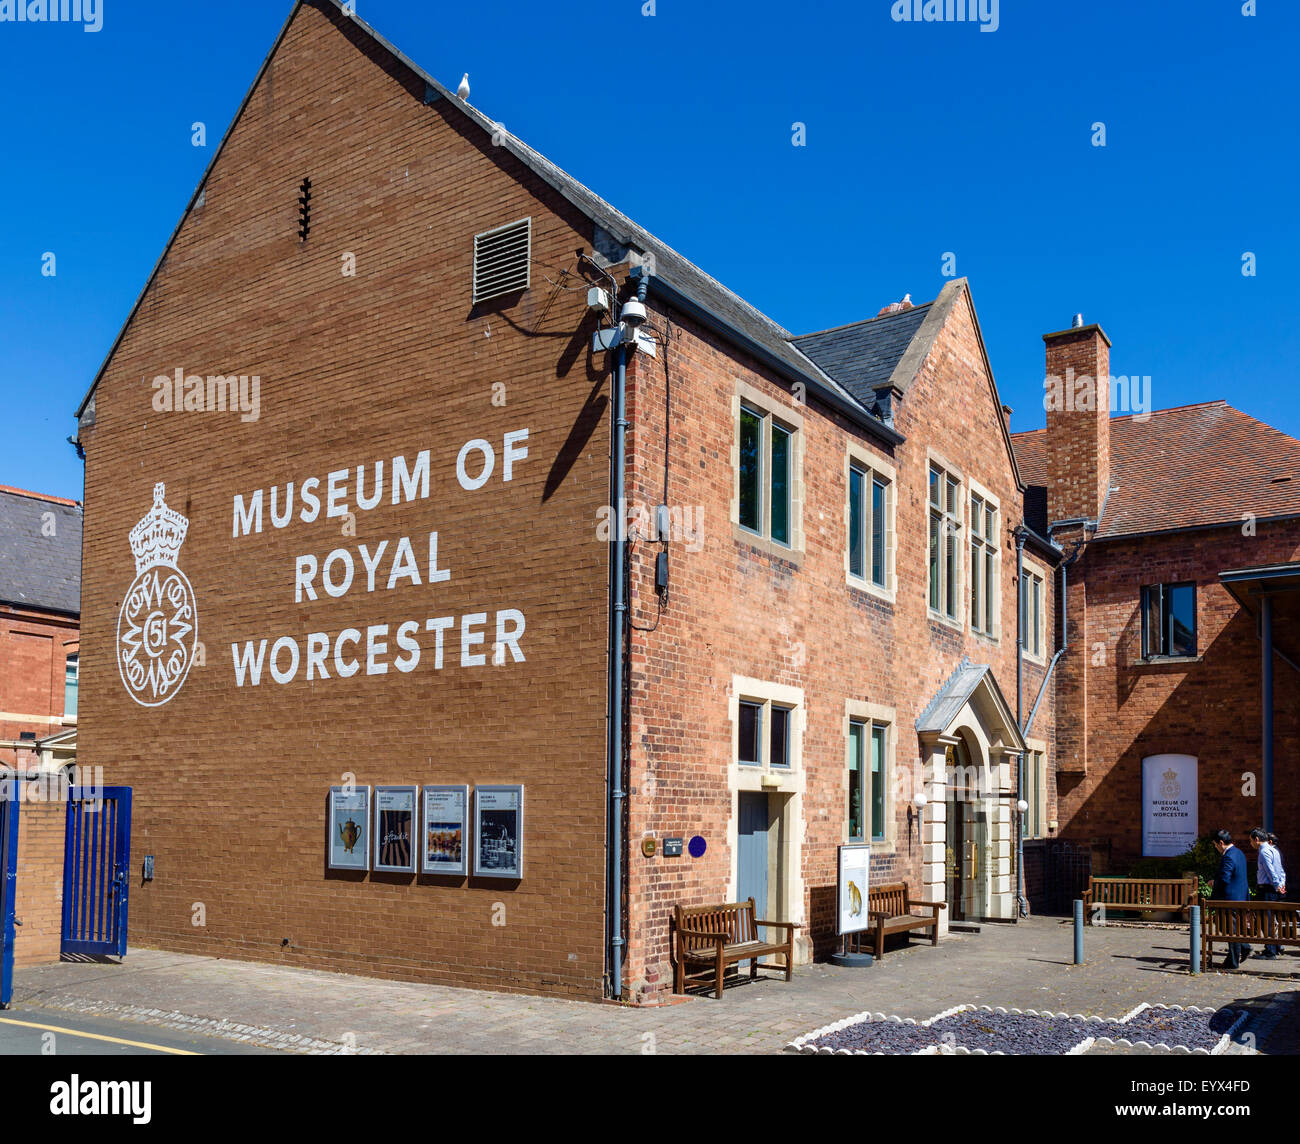 Royal Worcester Stock Photos & Royal Worcester Stock Images - Alamy